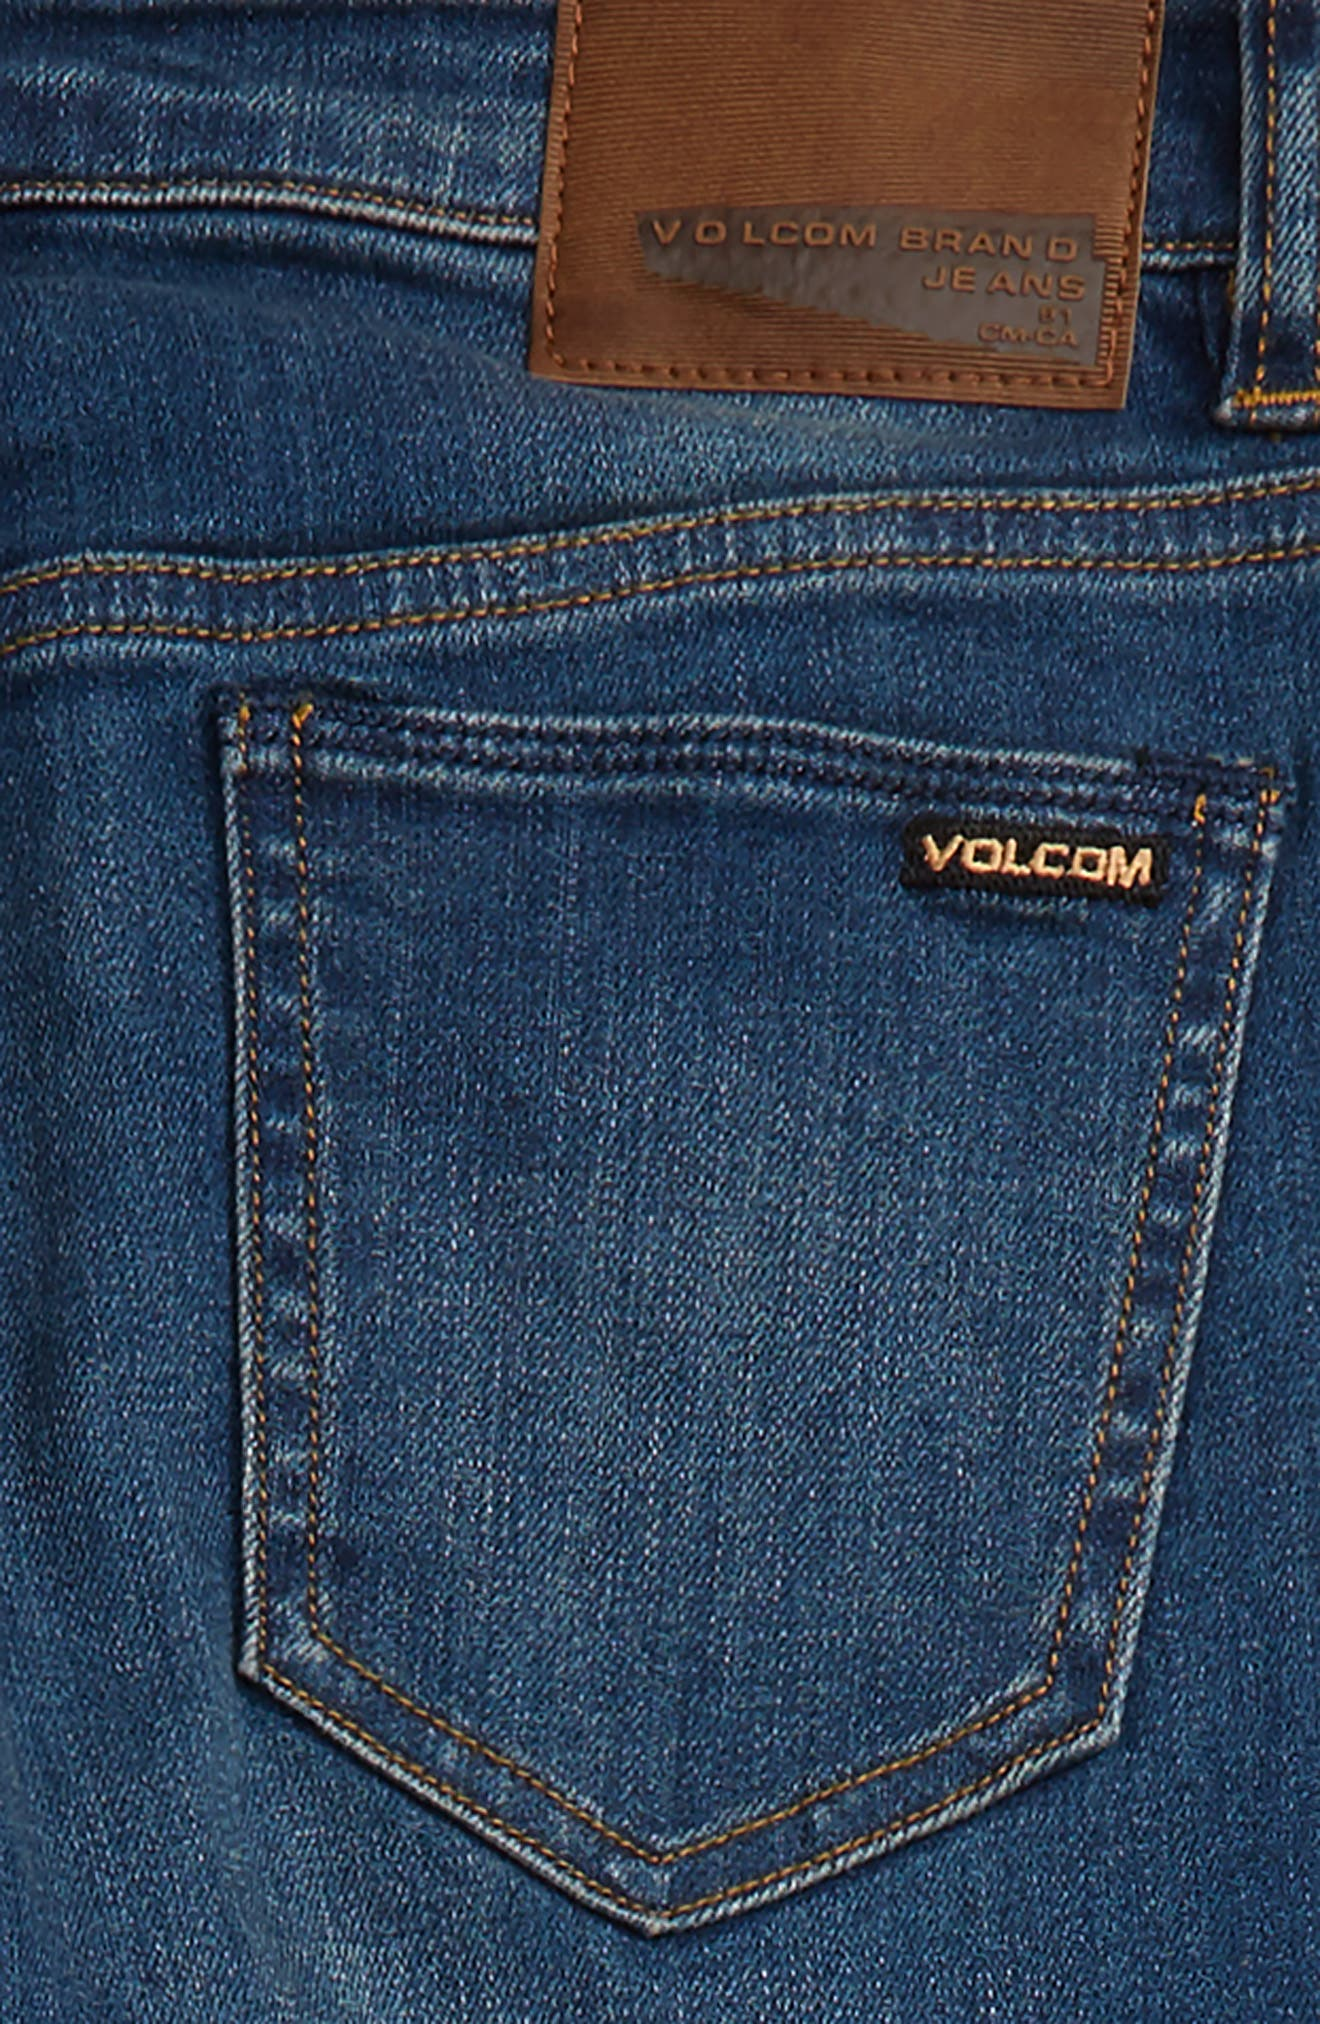 Alternate Image 3  - Volcom Vorta Slim Fit Jeans (Big Boys)